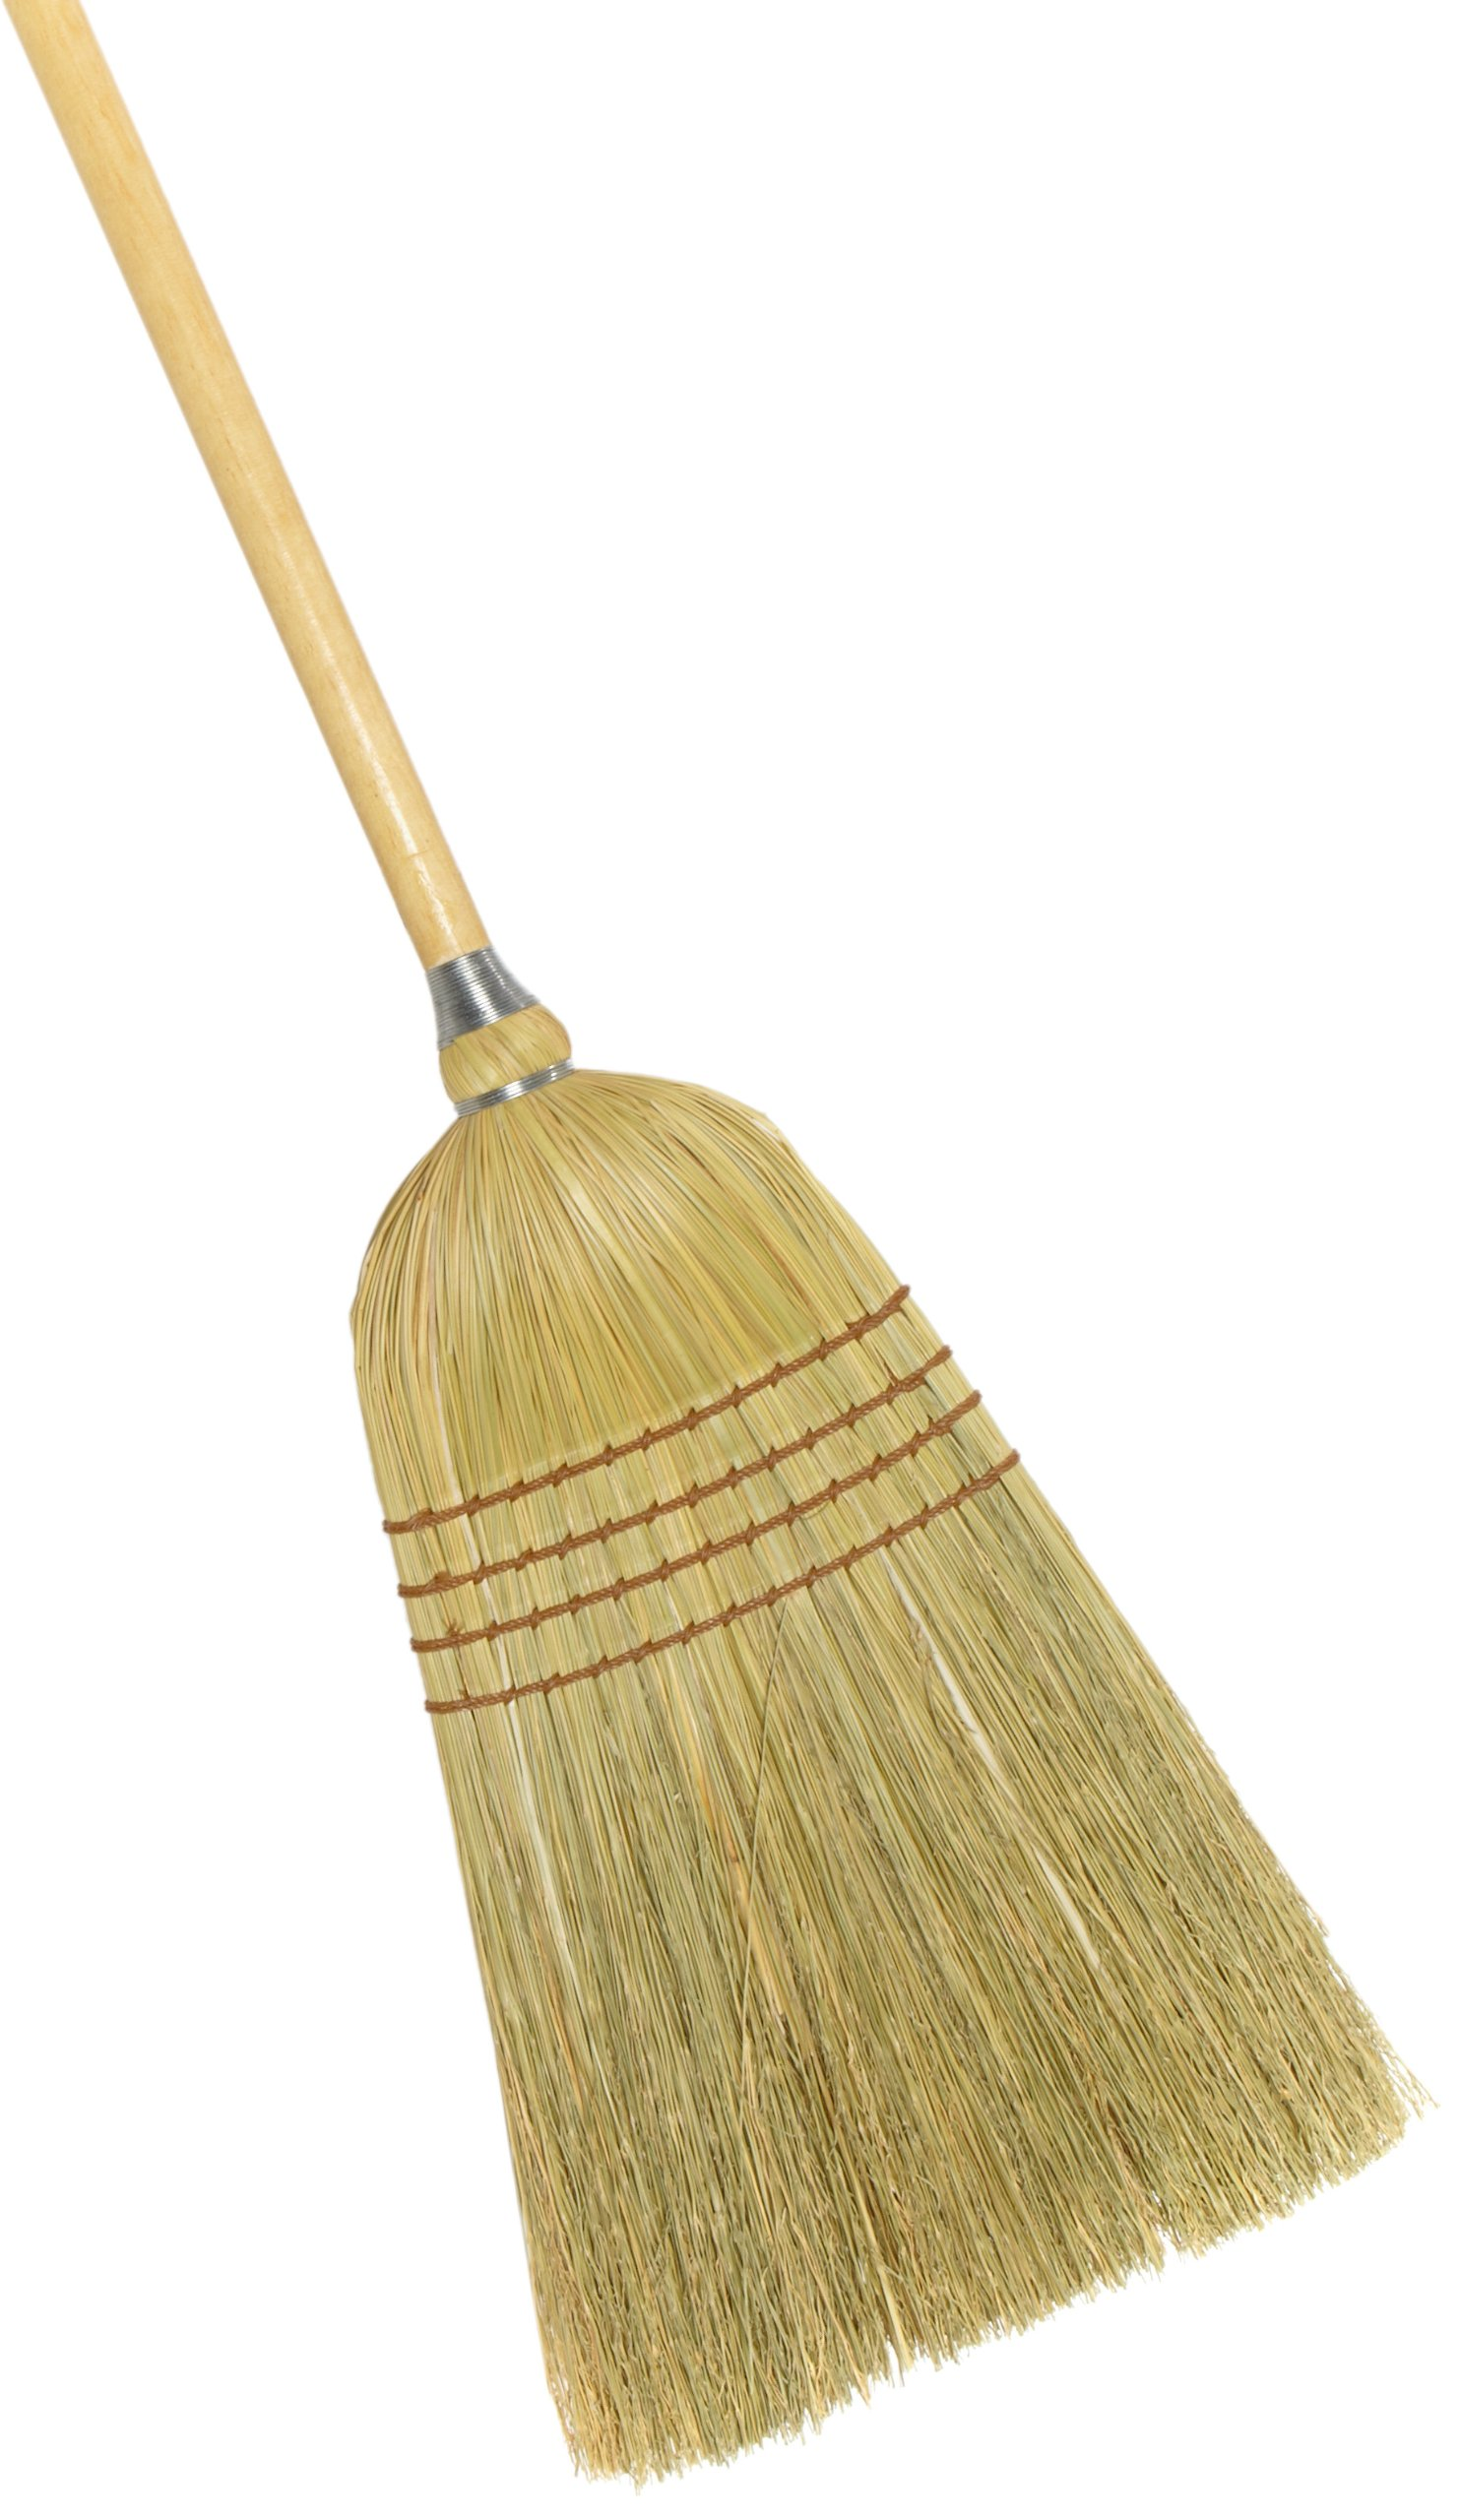 Weiler 44009 Corn Fiber Light Industrial Upright Broom with Wood Handle, 1-1/2'' Head Width, 54'' Overall Length